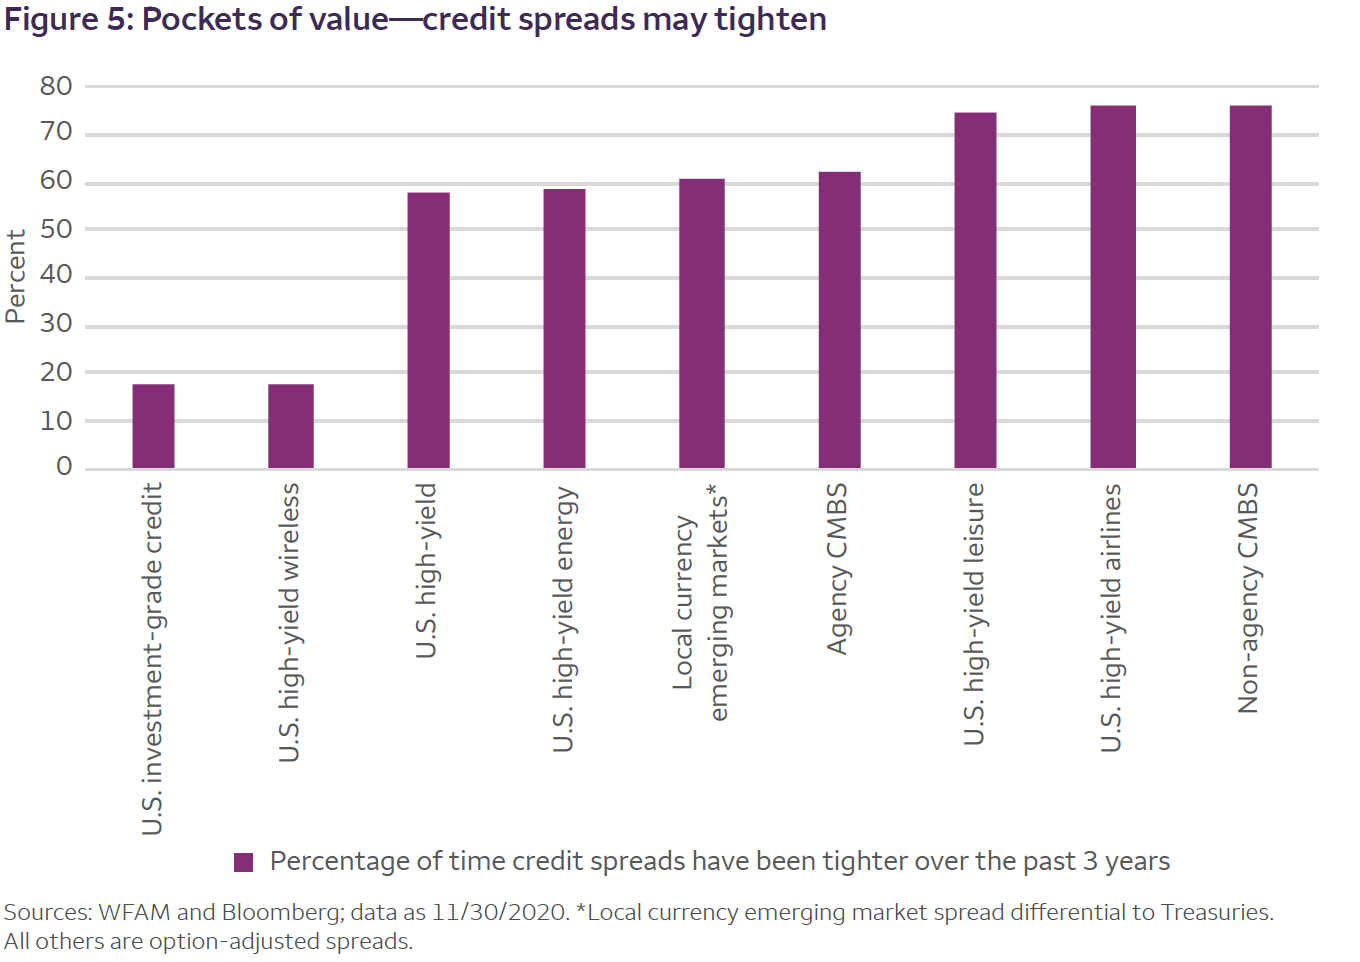 Figure 5: Pockets of value—credit spreads may tighten